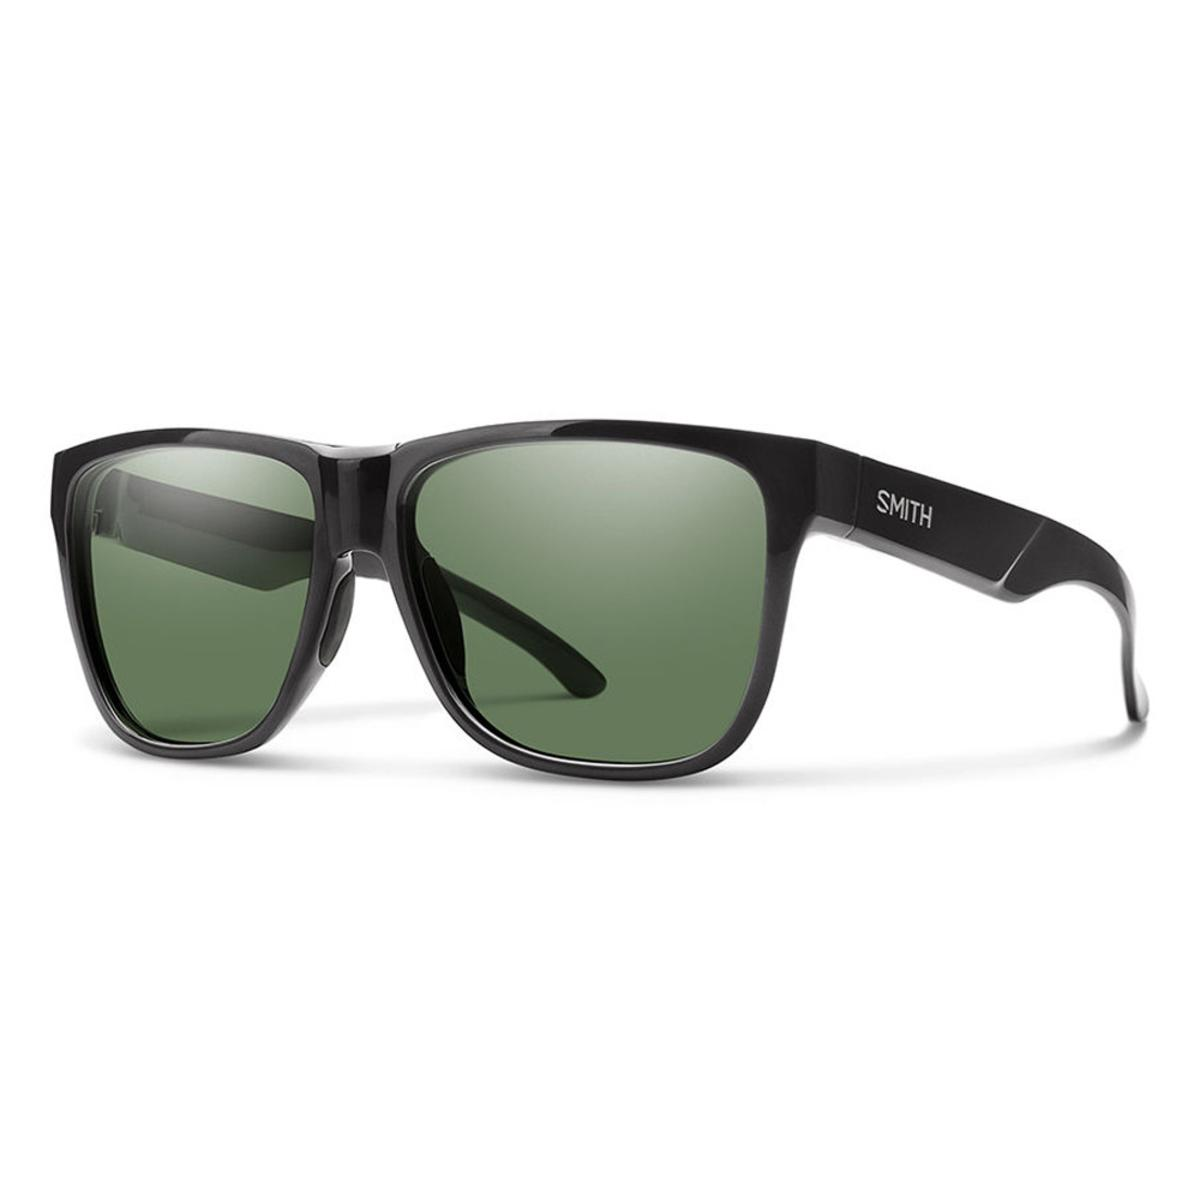 Smith Optics Lowdown XL 2 Sunglasses Carbonic Gray Green - Black Frame